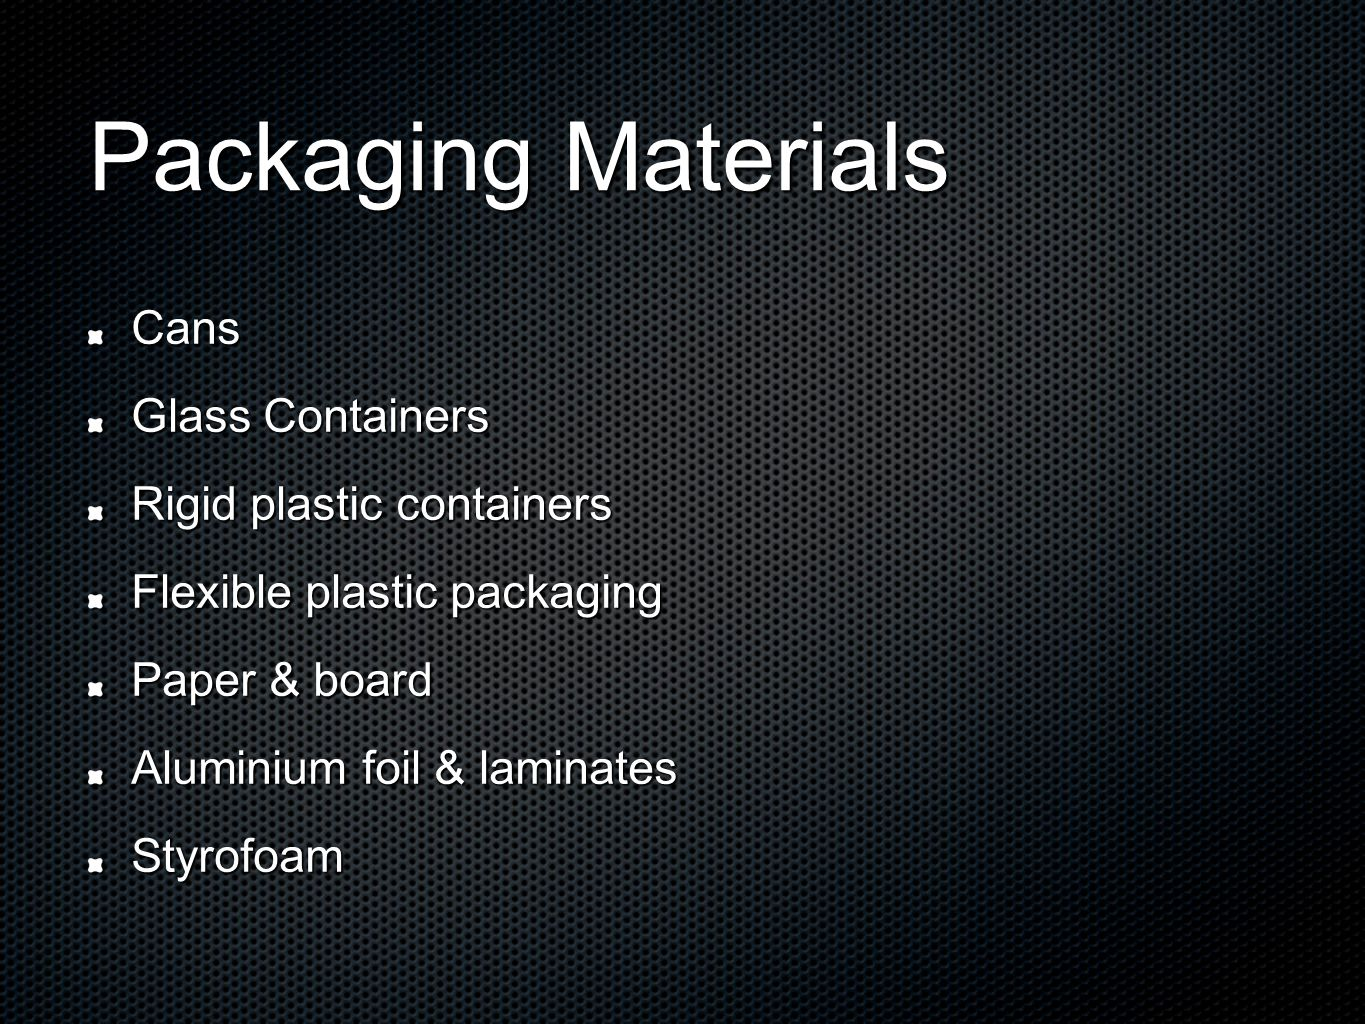 Rigid Plastic Packaging Advantages: Lightweight & strong High resistance to breakage Available in a wide variety of colours, shapes, sizes & textures Can add to the sale appeal of the product Cheap and easy to produce compared to other packaging materials